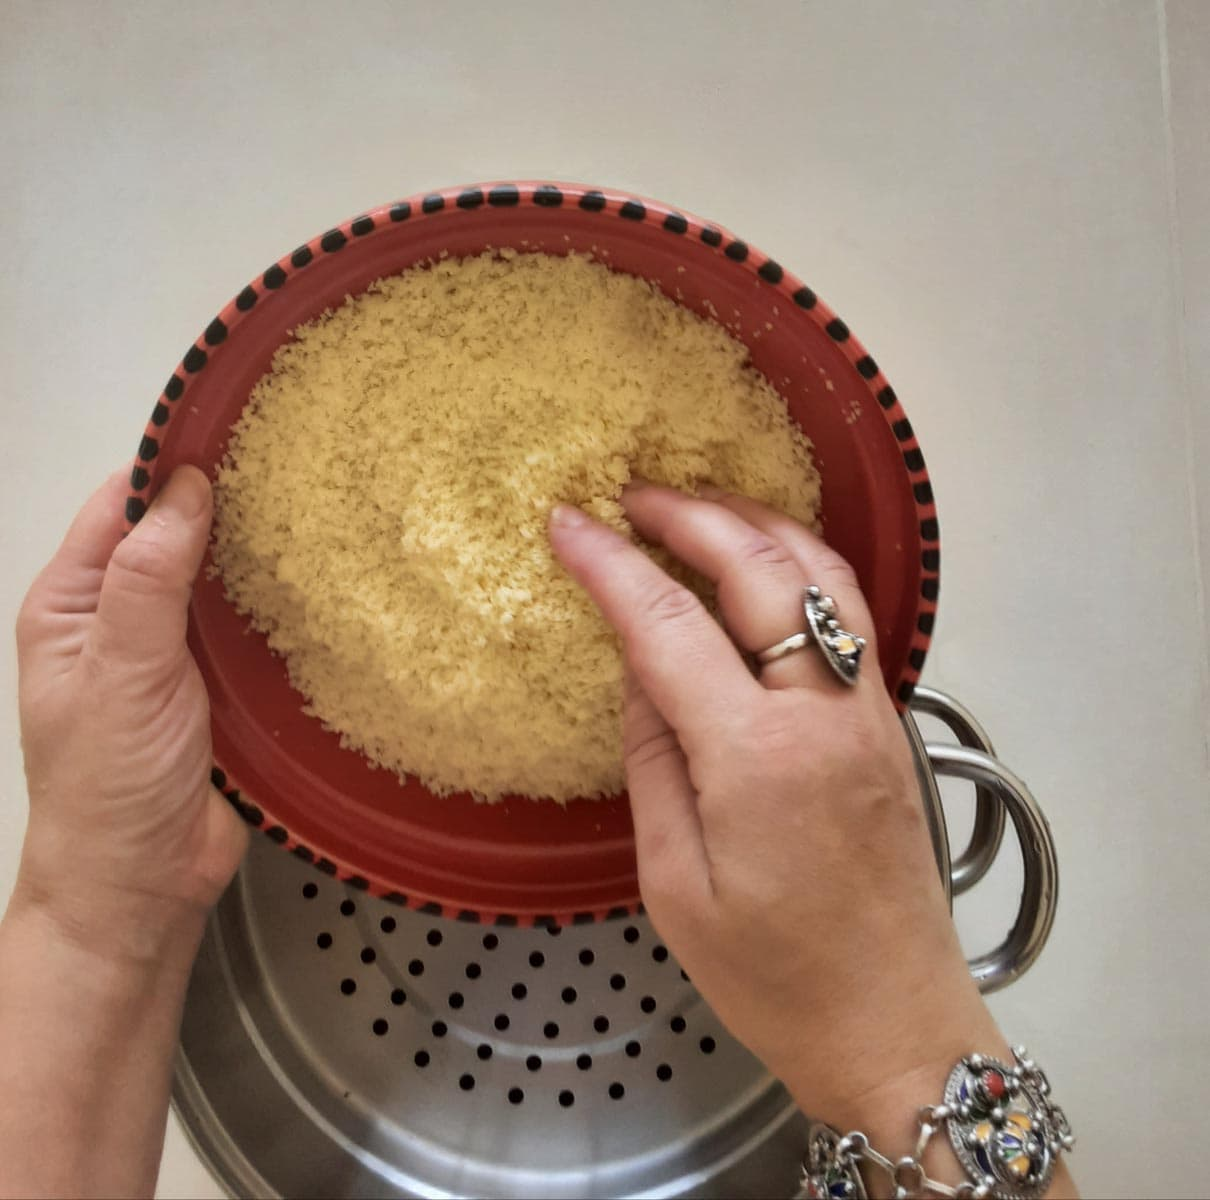 pouring couscous into a steamer tray